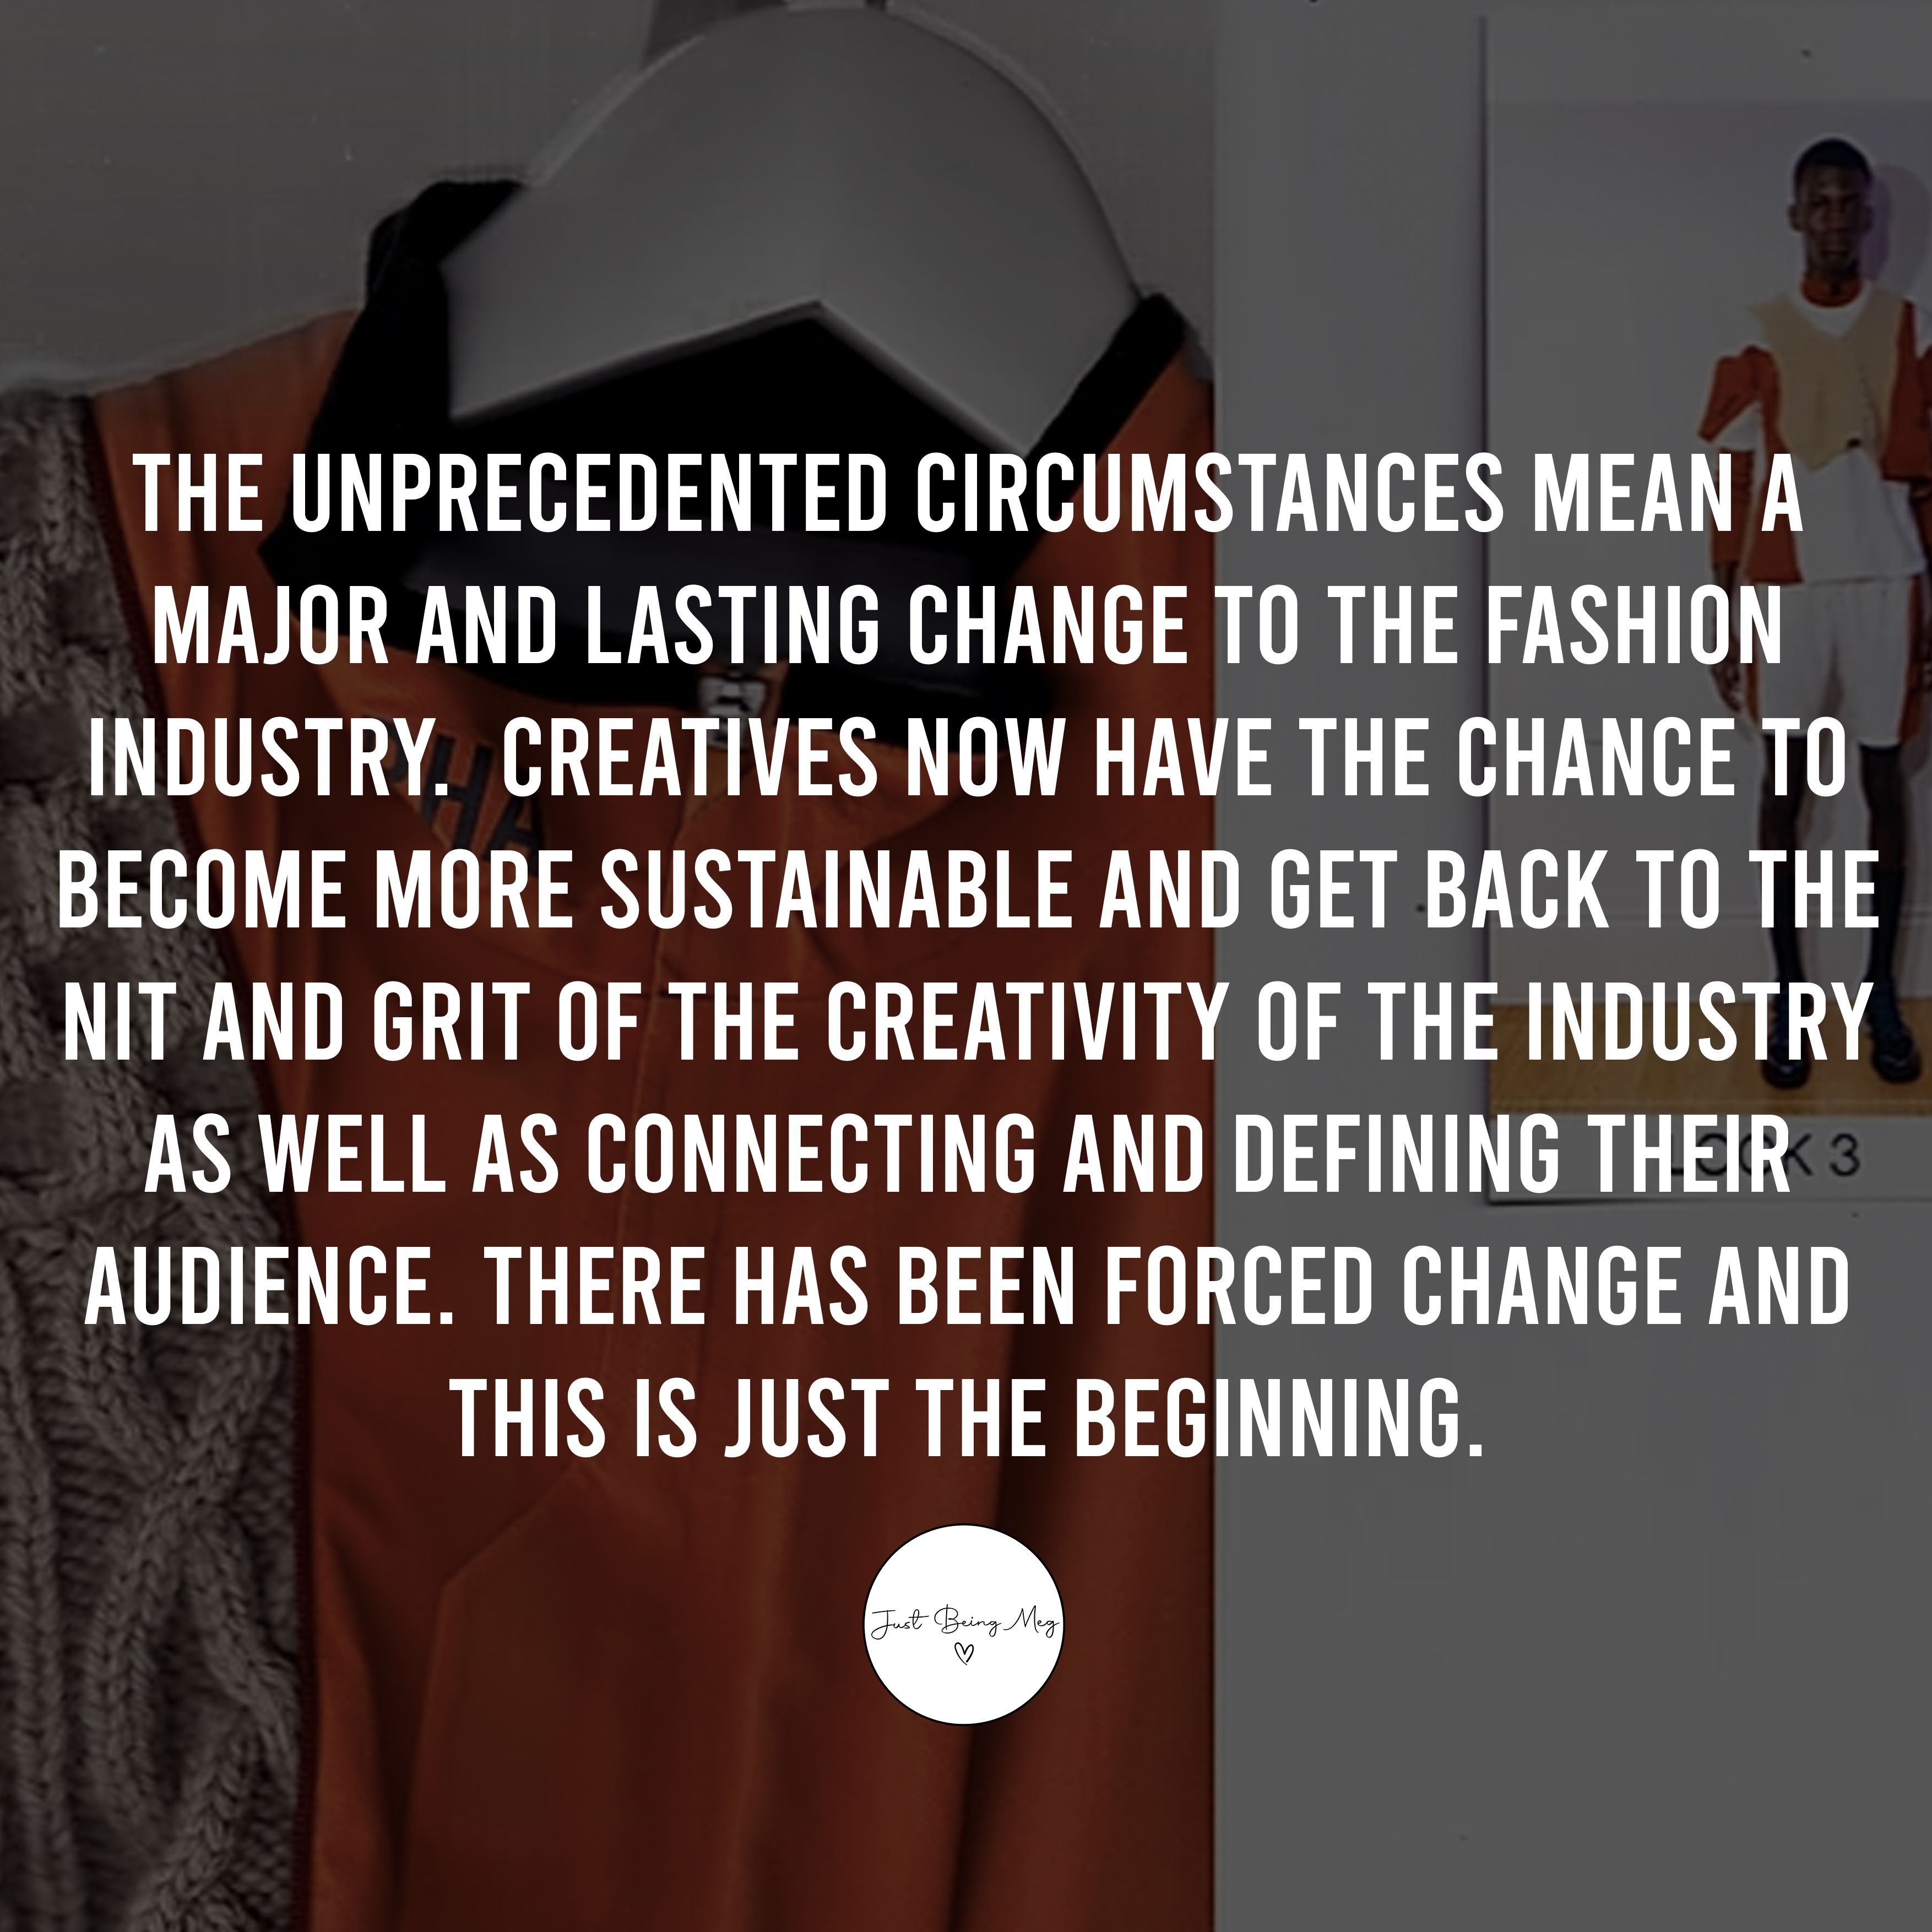 CHECK OUT JUST BEING MEG TALKING ABOUT FASHION POLITICS,, SUSTAINBLE MERCHANDISE & #LFWMENS